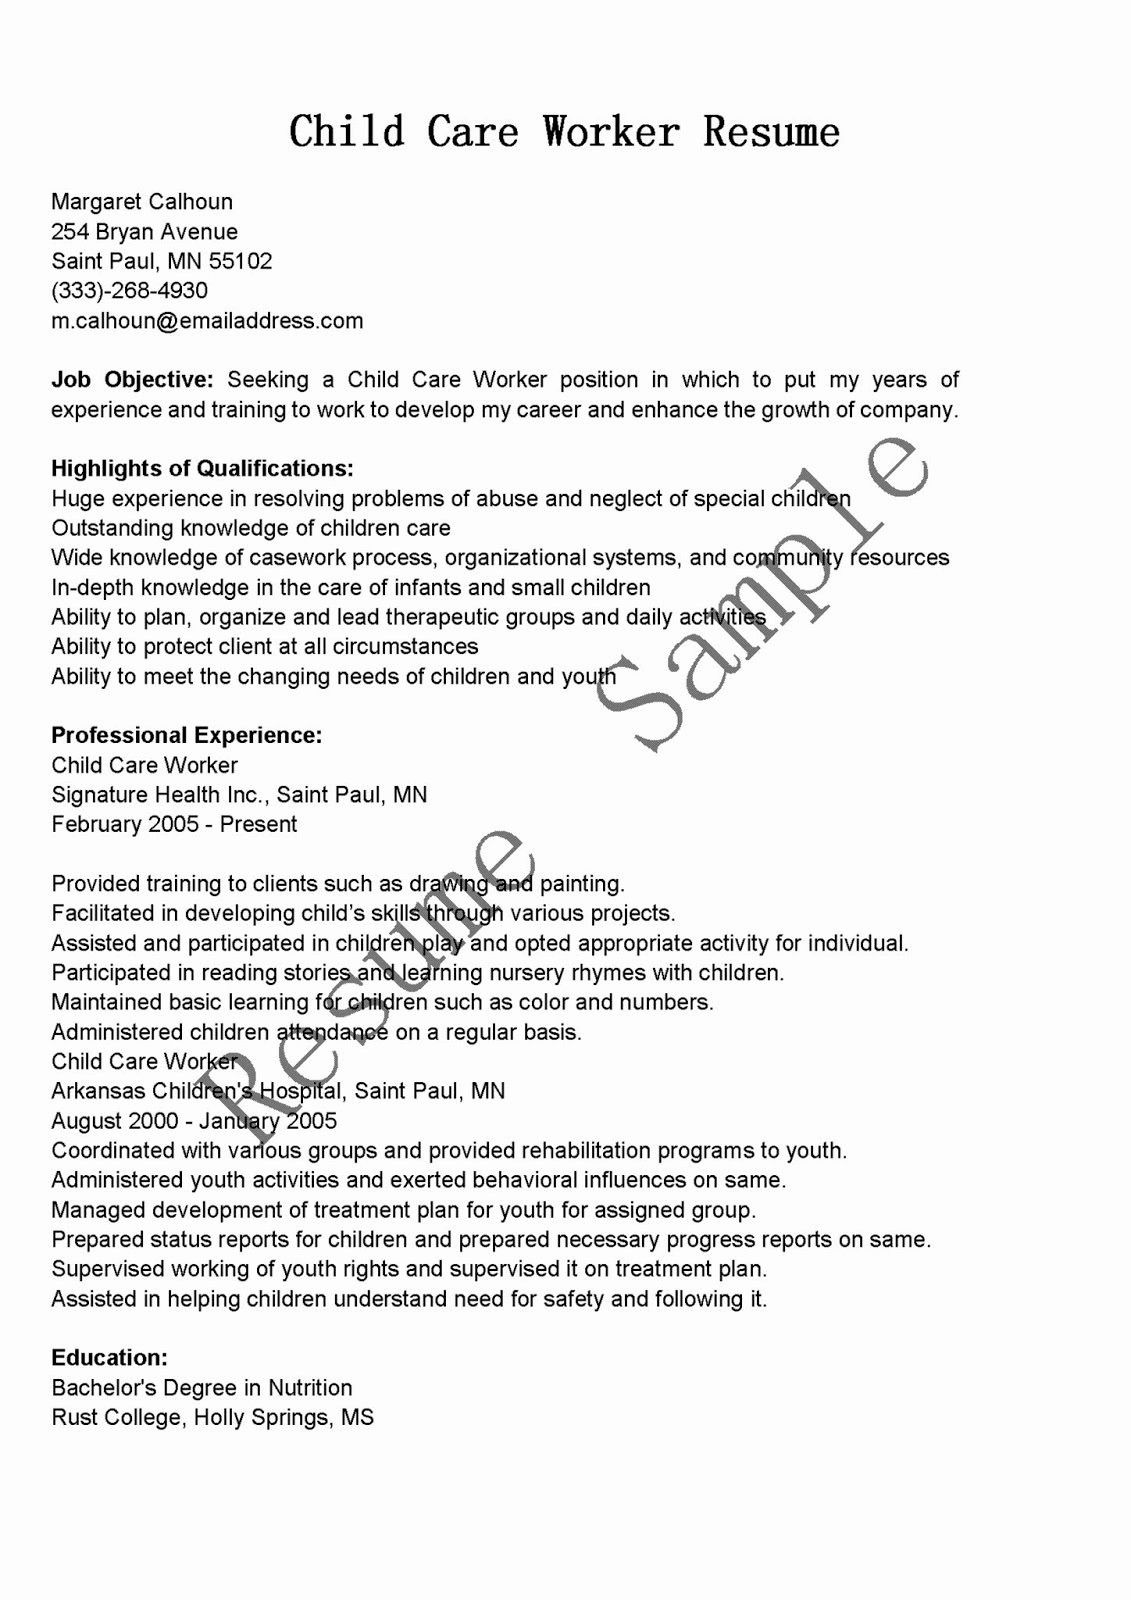 46 Lovely Child Care Resume Template in 2020 (With images